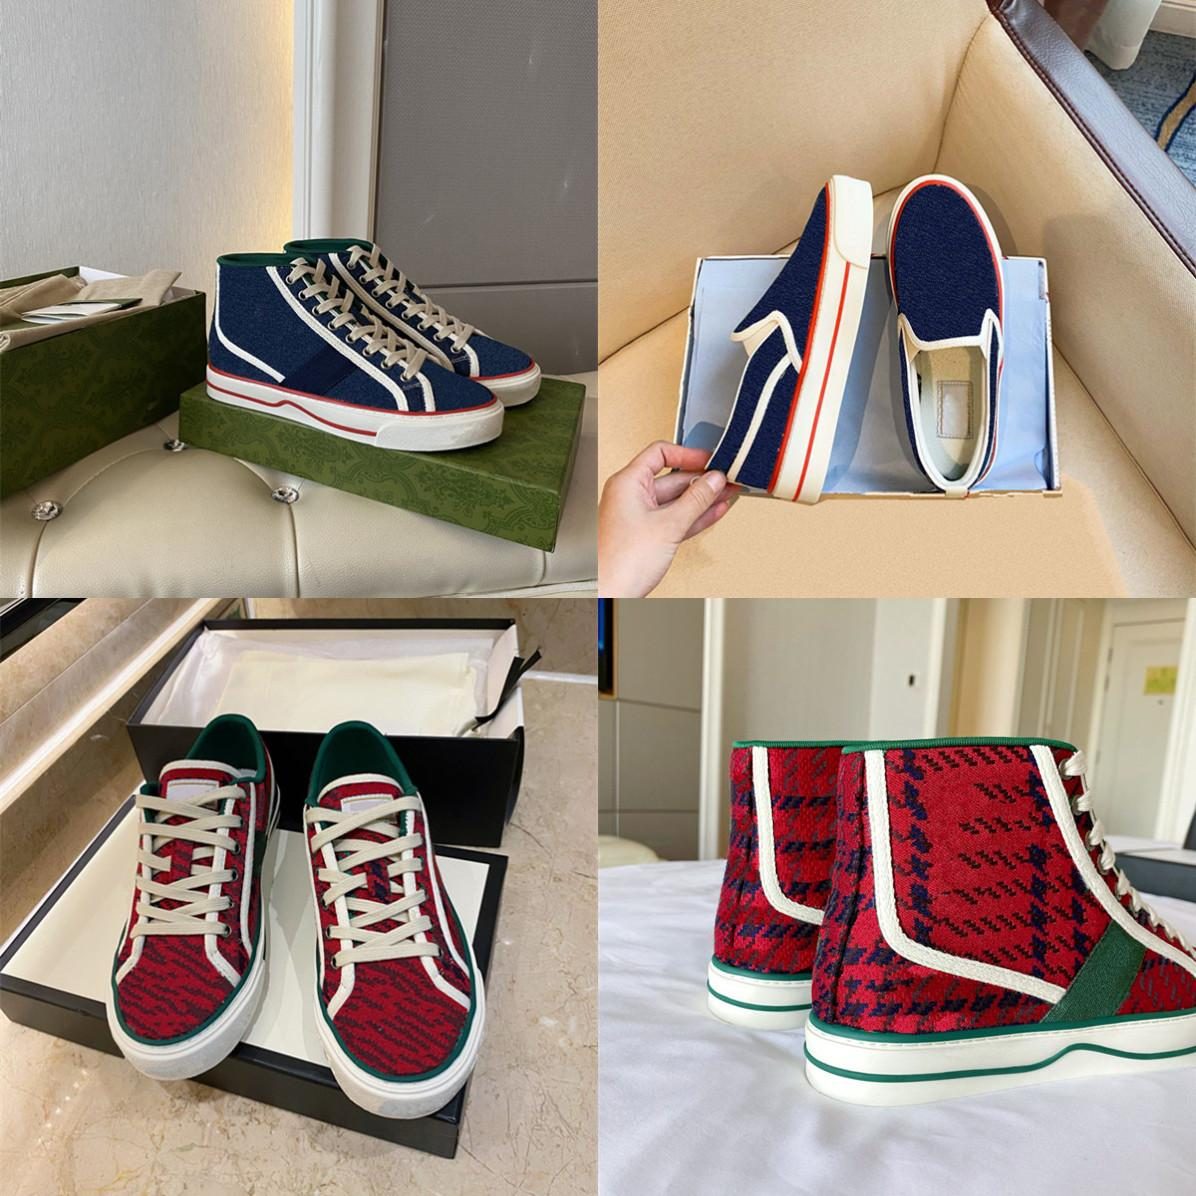 Tenis 1977 High Top Womens Zapatos casuales Red and Green Houndstooth Stripe Luxurys Designers Shoe Slight Slip-On Sneaker